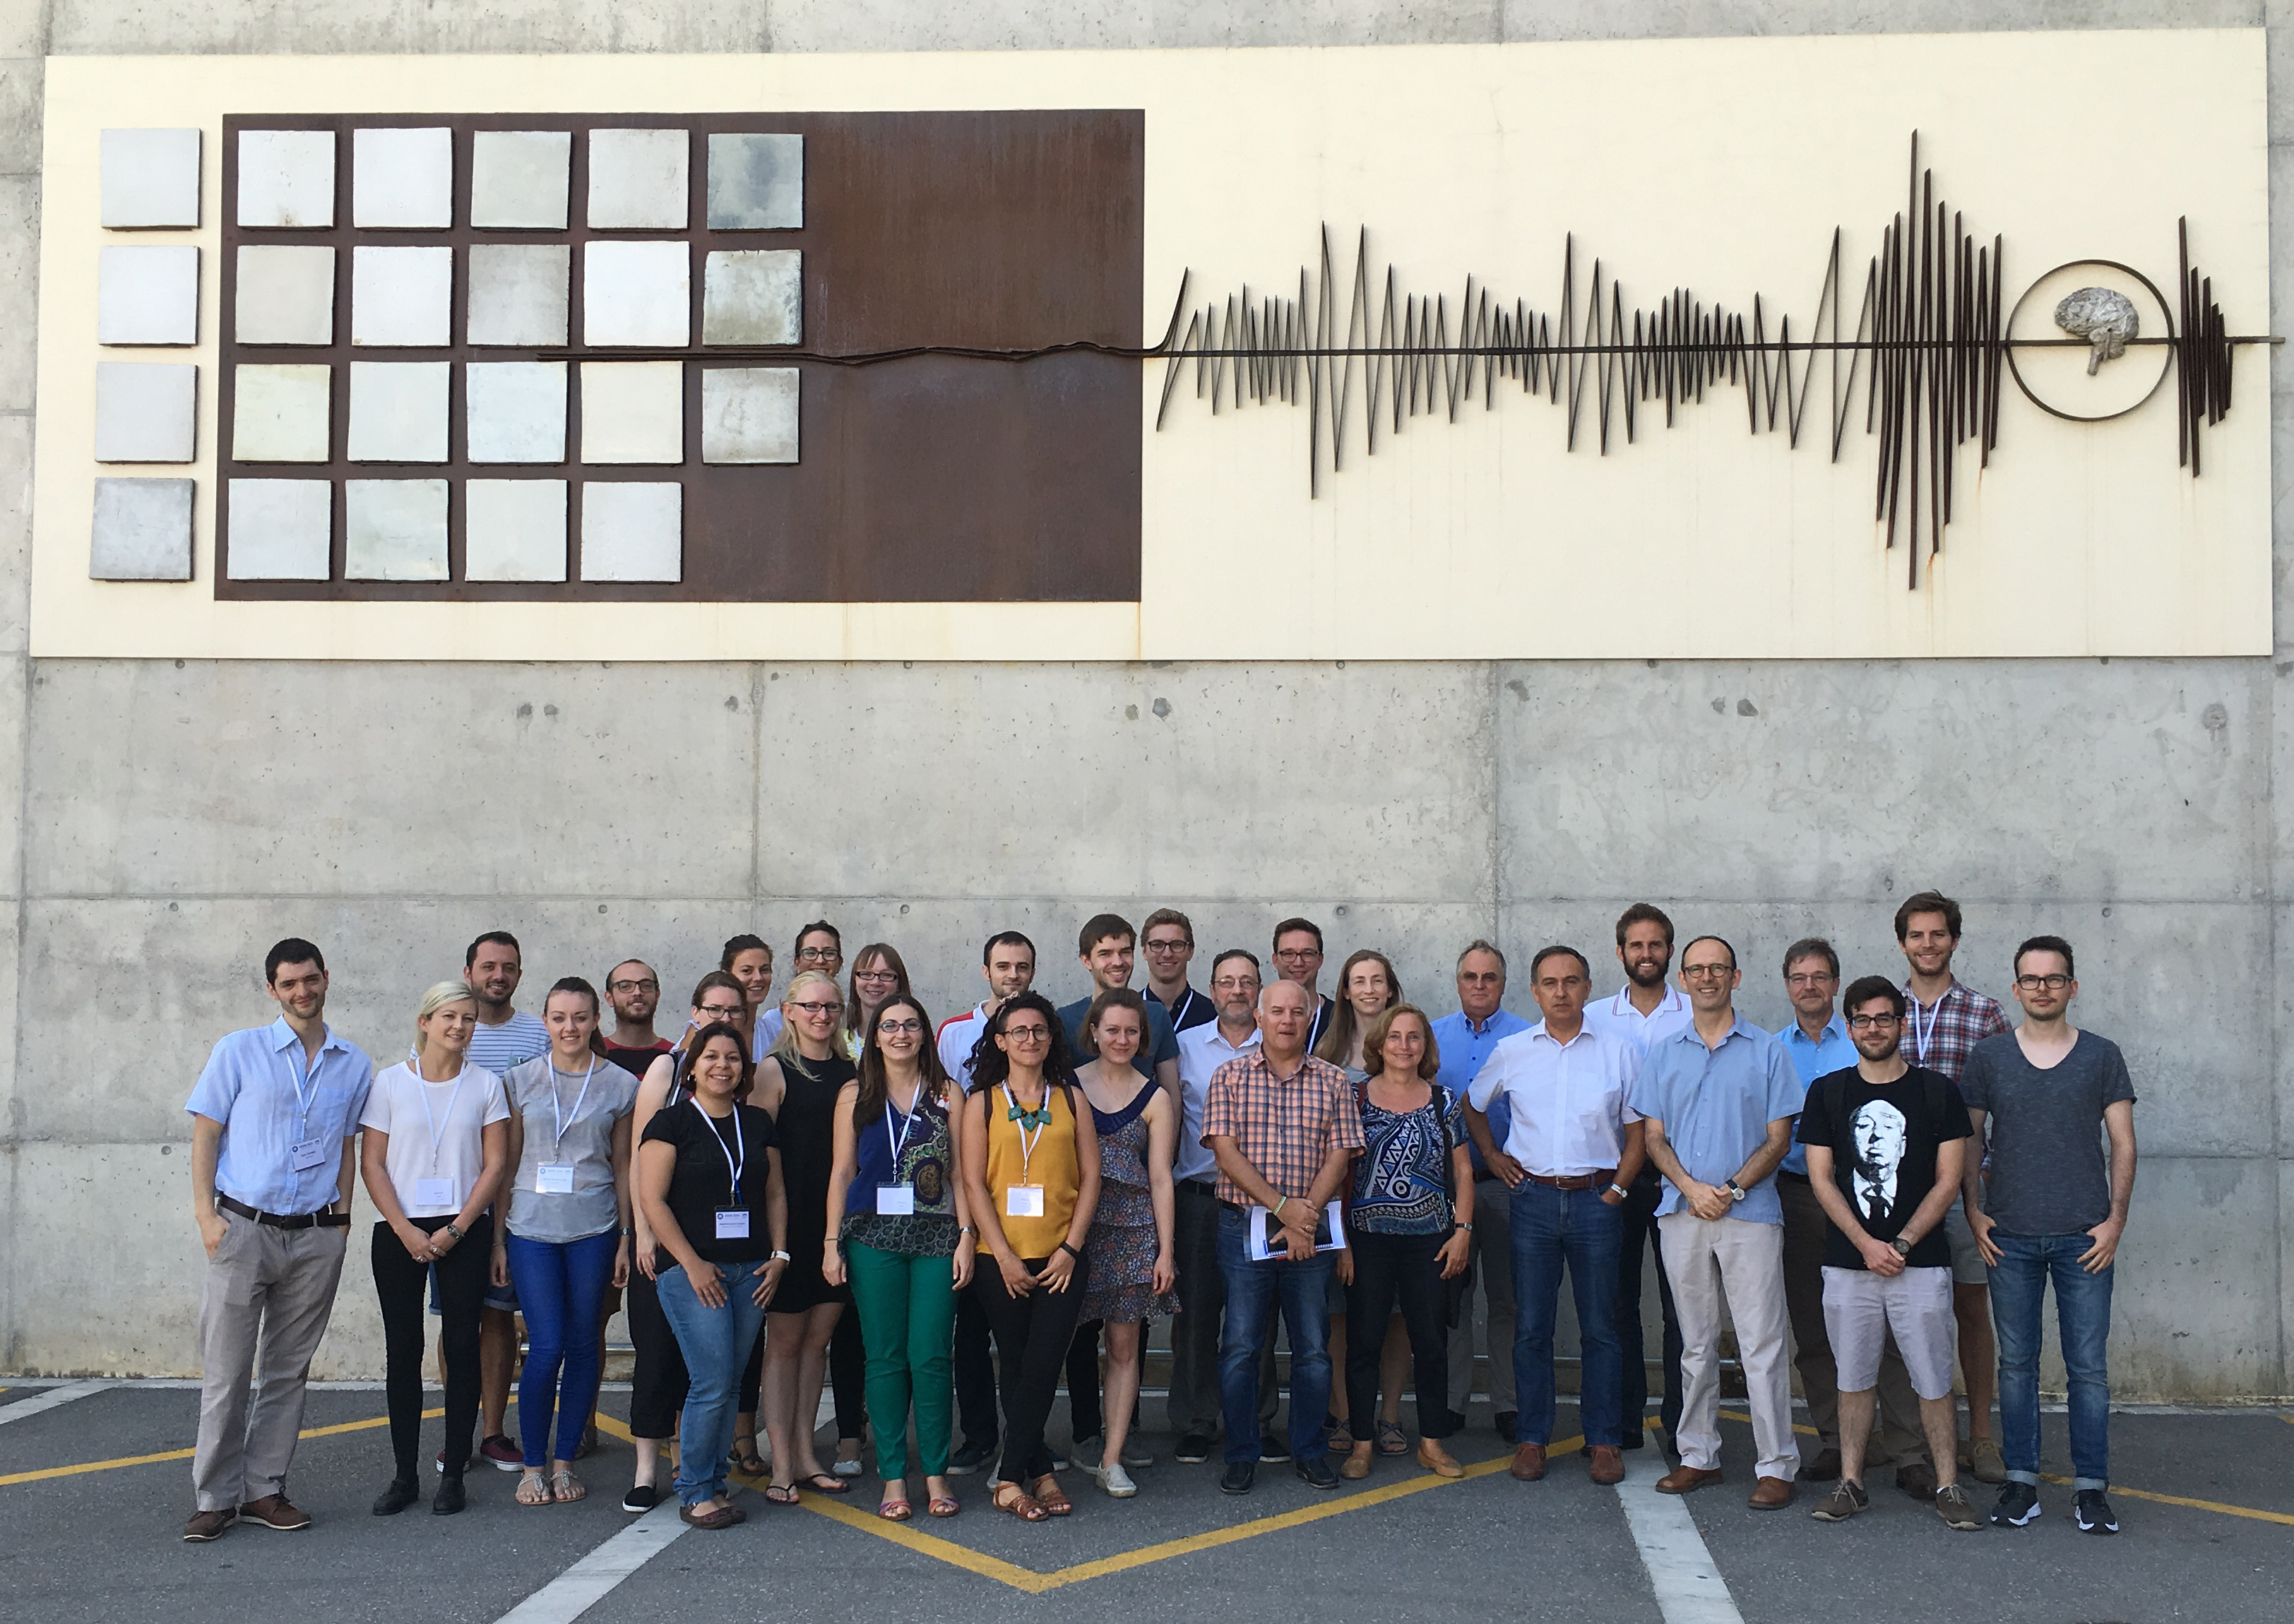 Participants of 2016 ESSIB in Barcelona